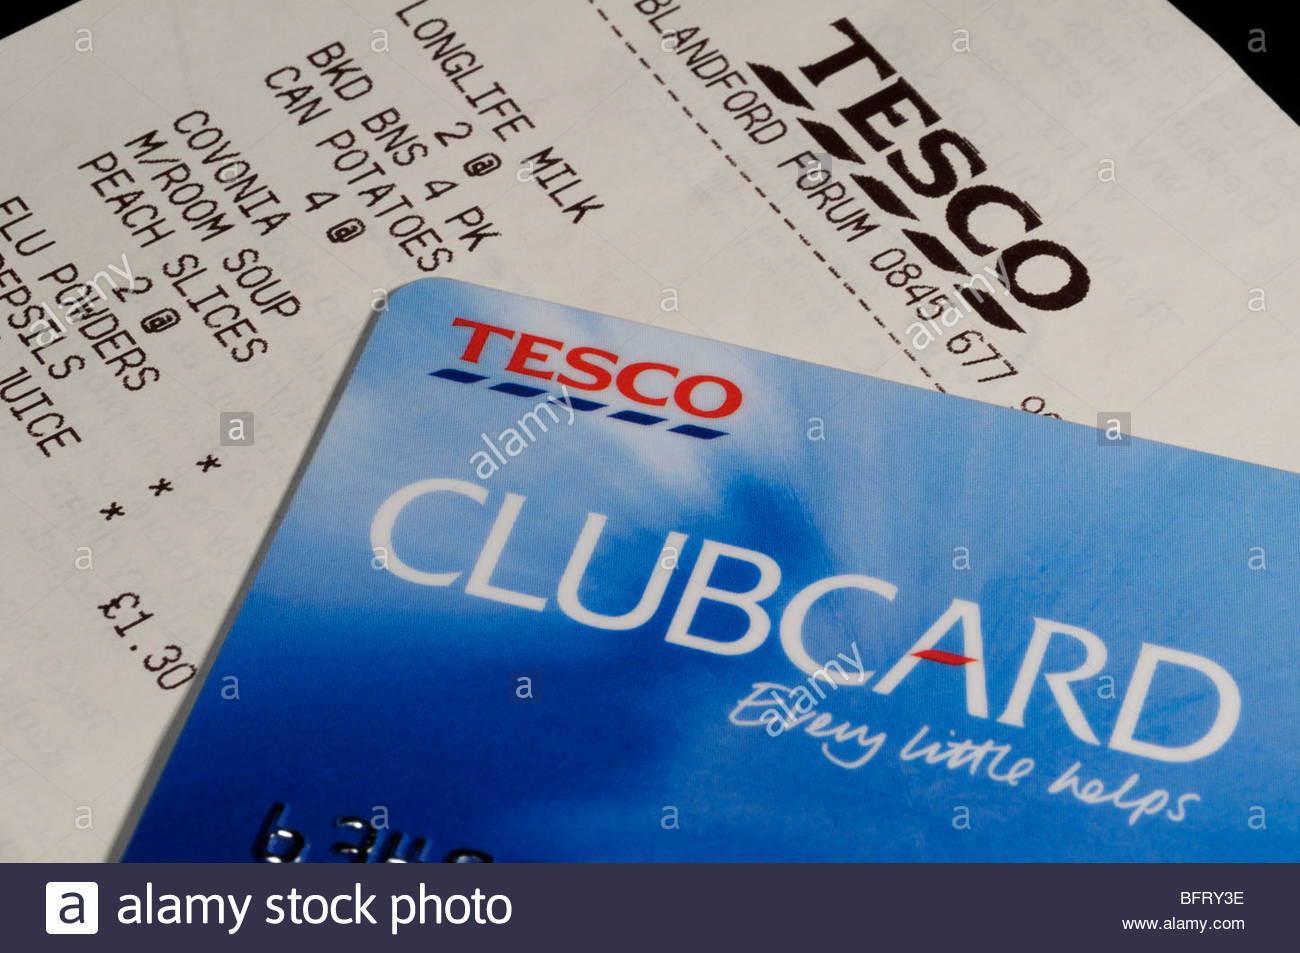 Tesco Clubcard - 1 Stock Photo